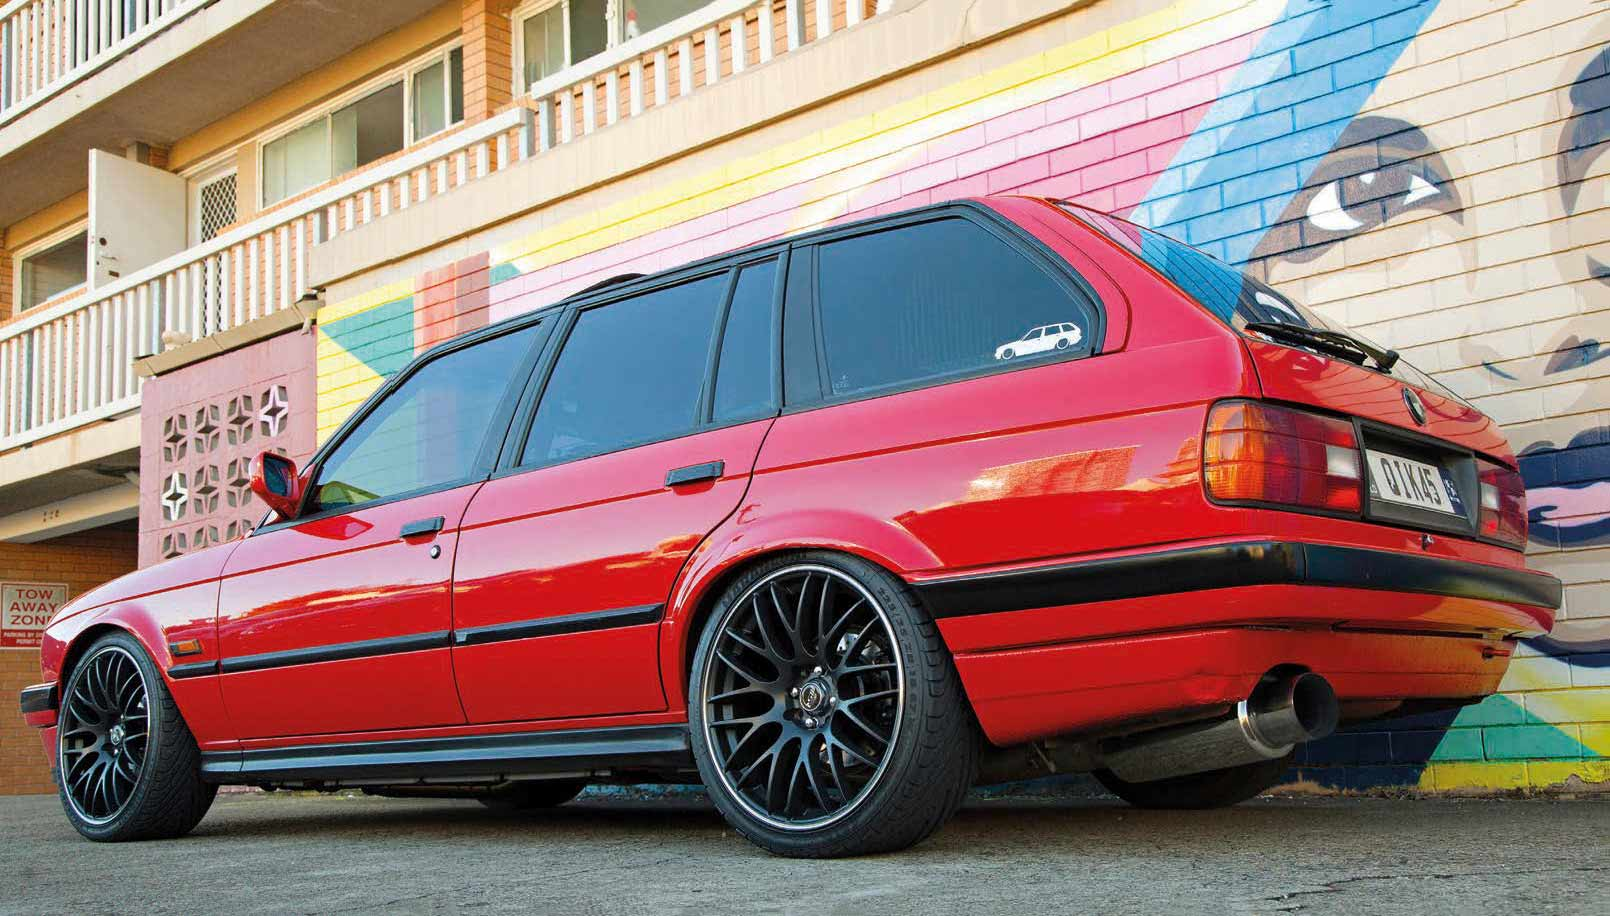 Little Red Booster Nissan SR20DET-swapped BMW E30 Touring - Drive-My